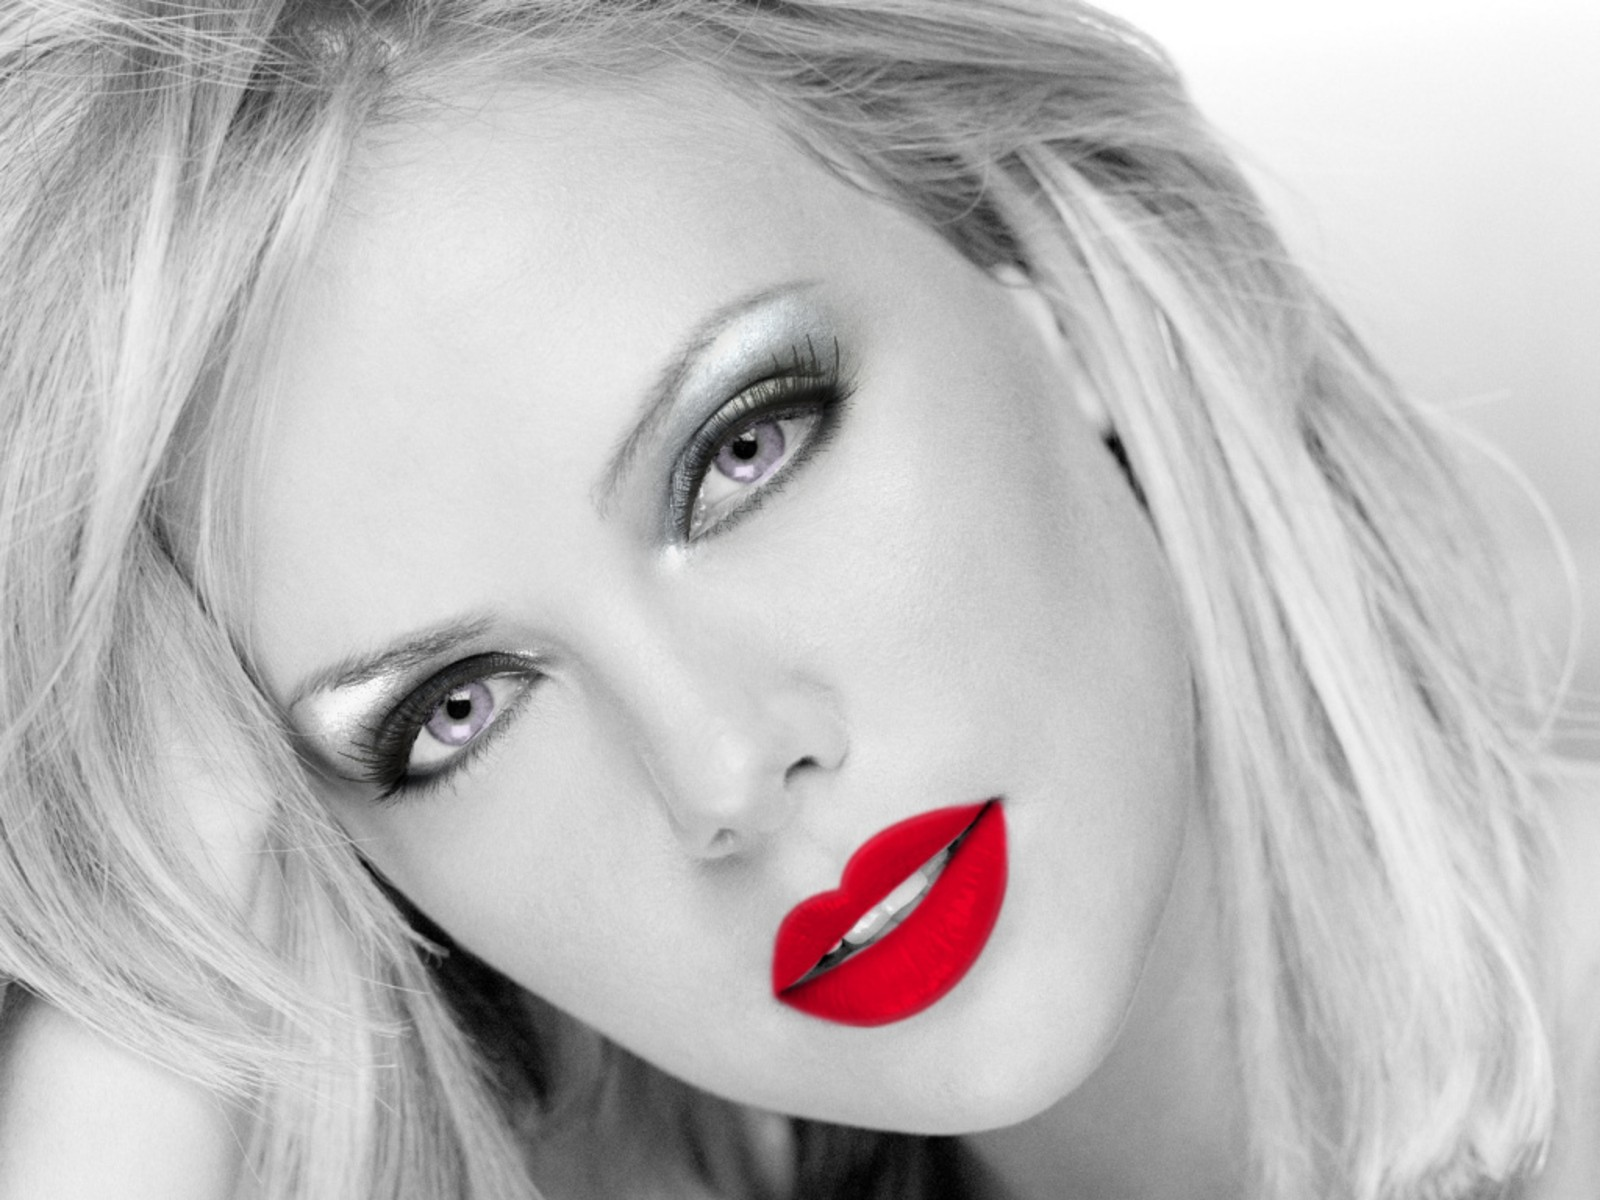 Grayscale Girl Wallpaper Charlize Theron 壁紙画像 Pchdwallpaper Com Pchdwallpaper Com